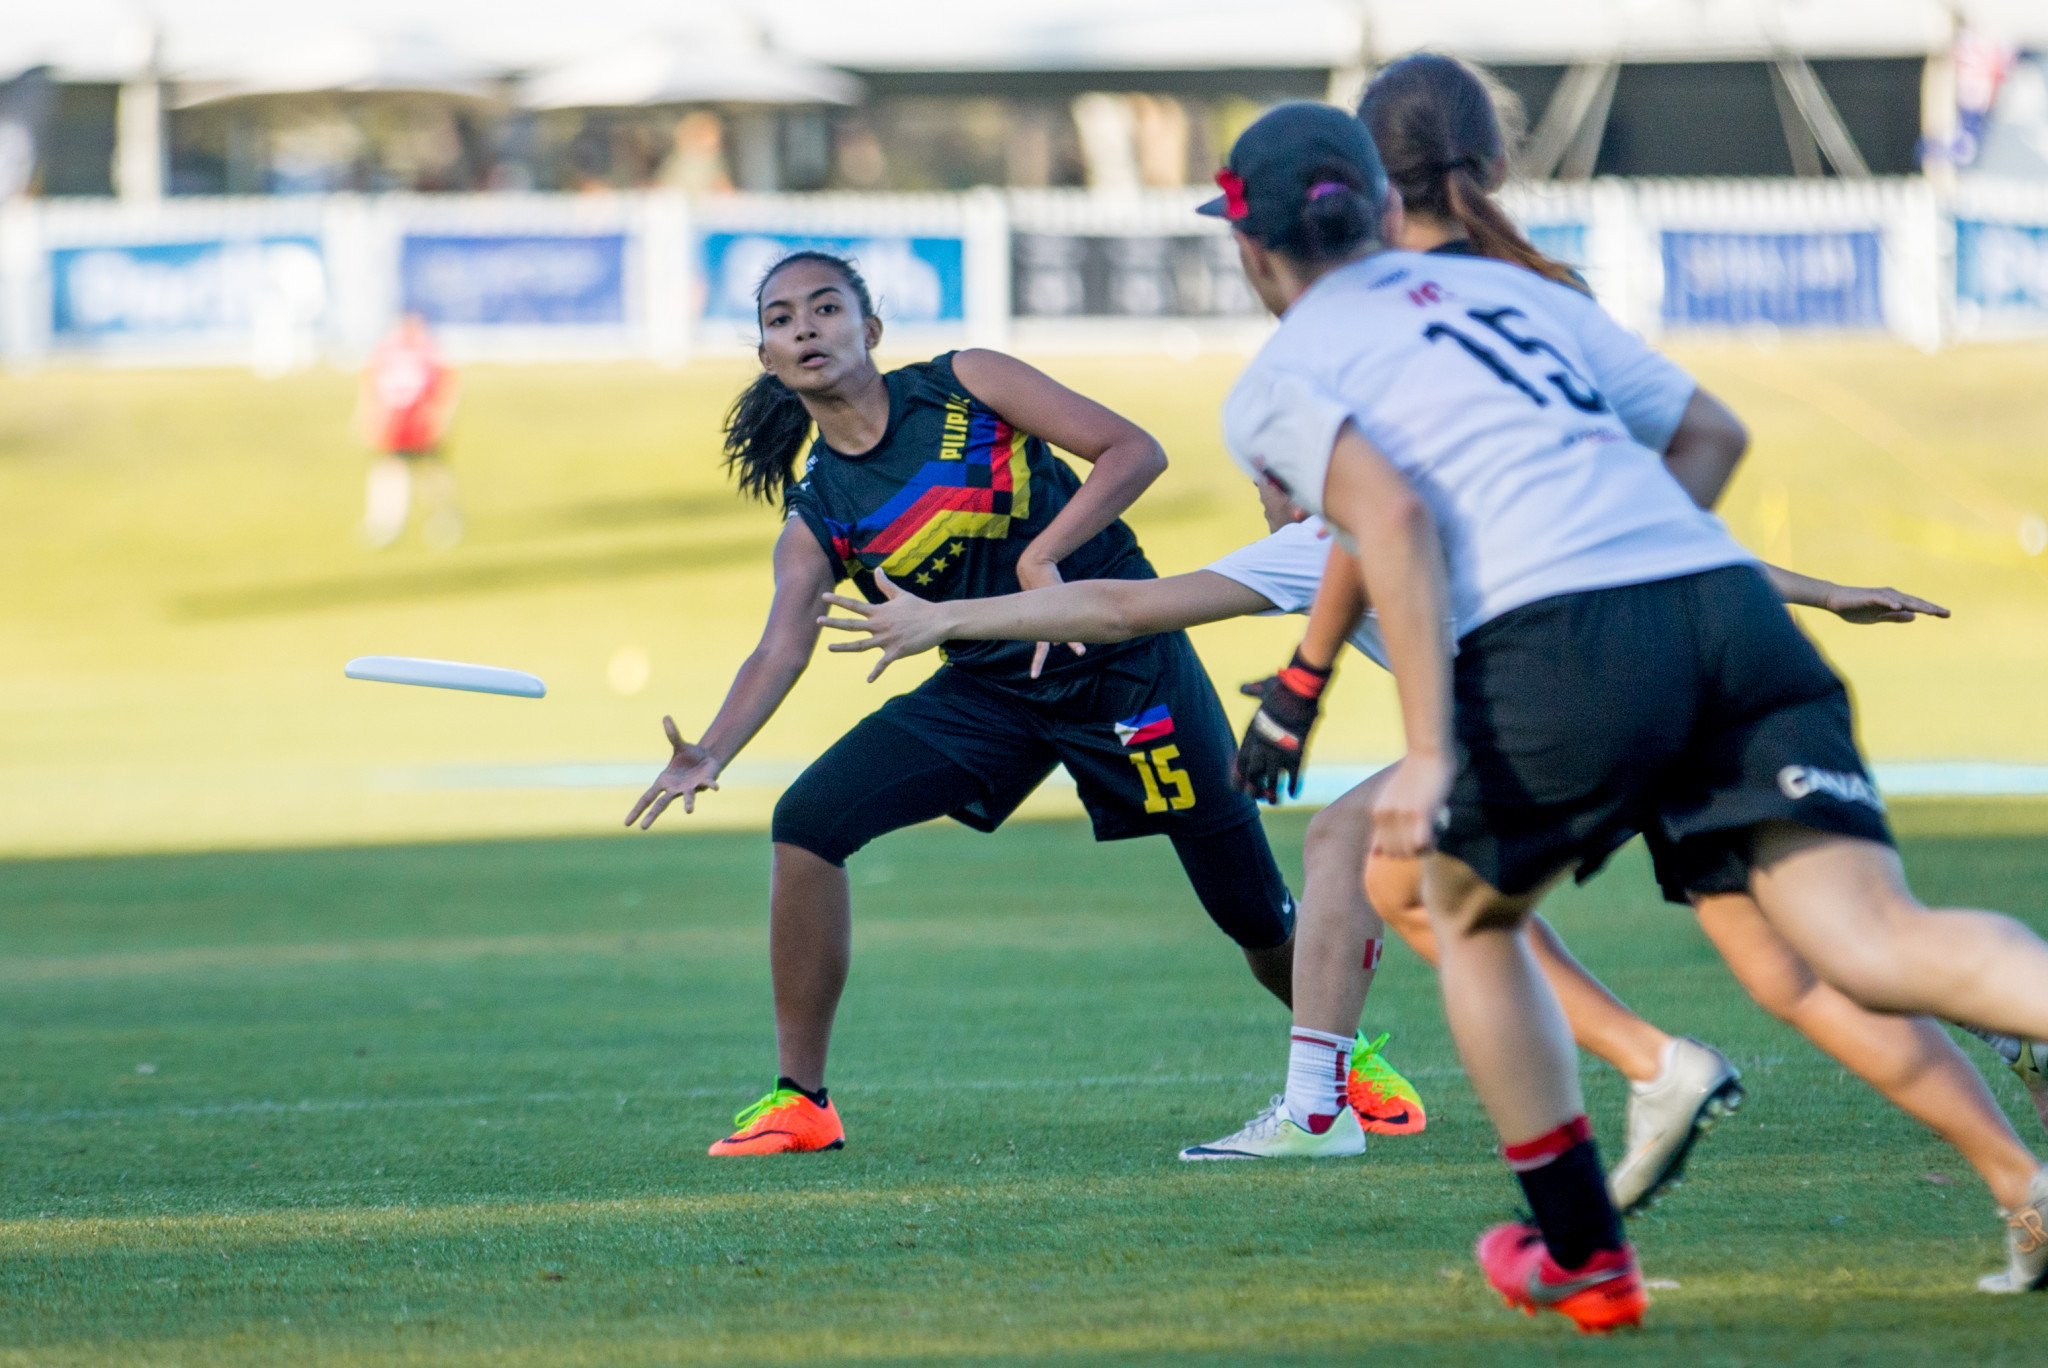 United States win all three golds at WFDF World Under-24 Ultimate Championships